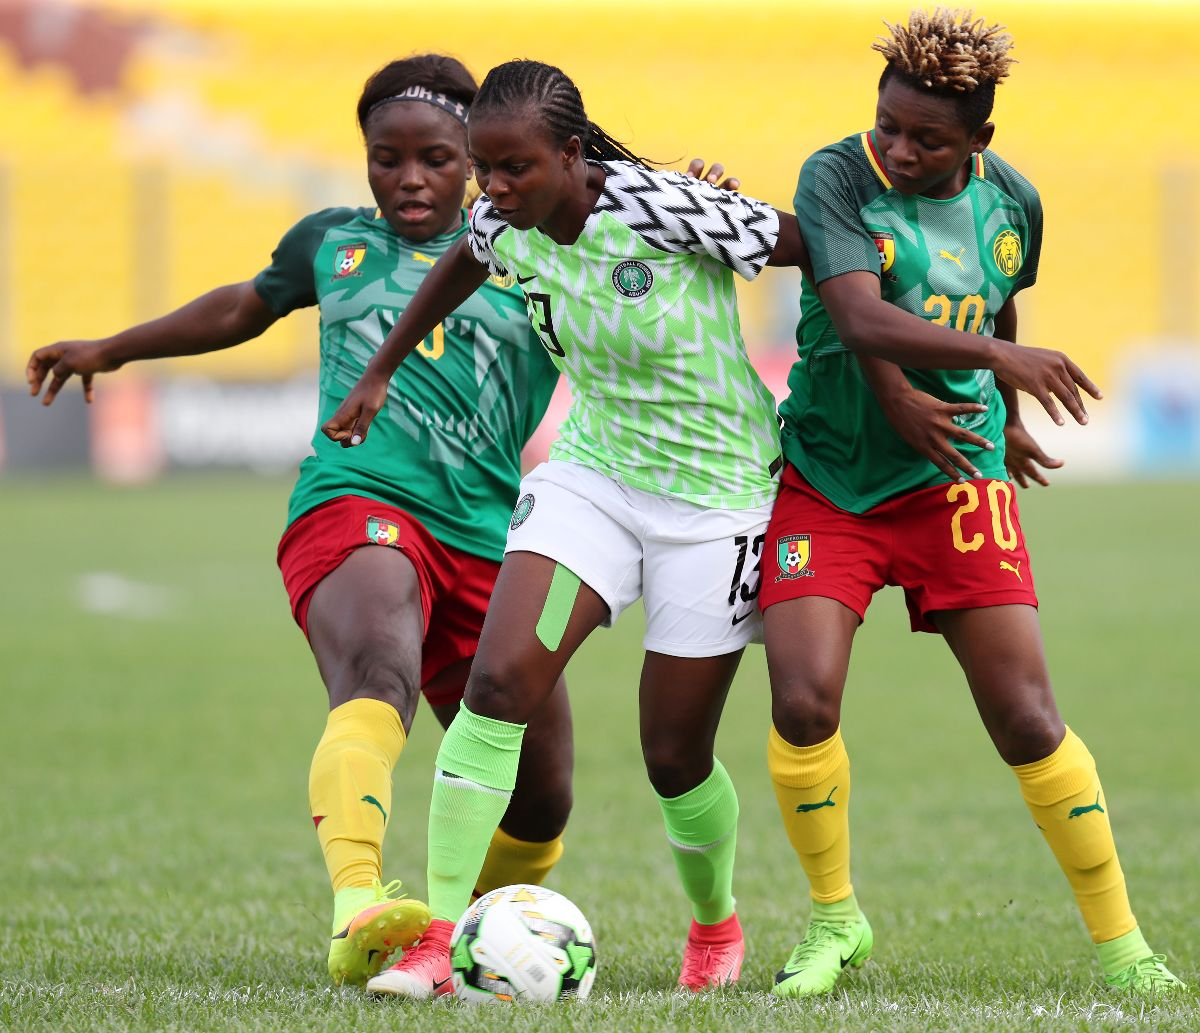 Caf announce Women's Football Strategy to grow the game in Africa - Sports Leo